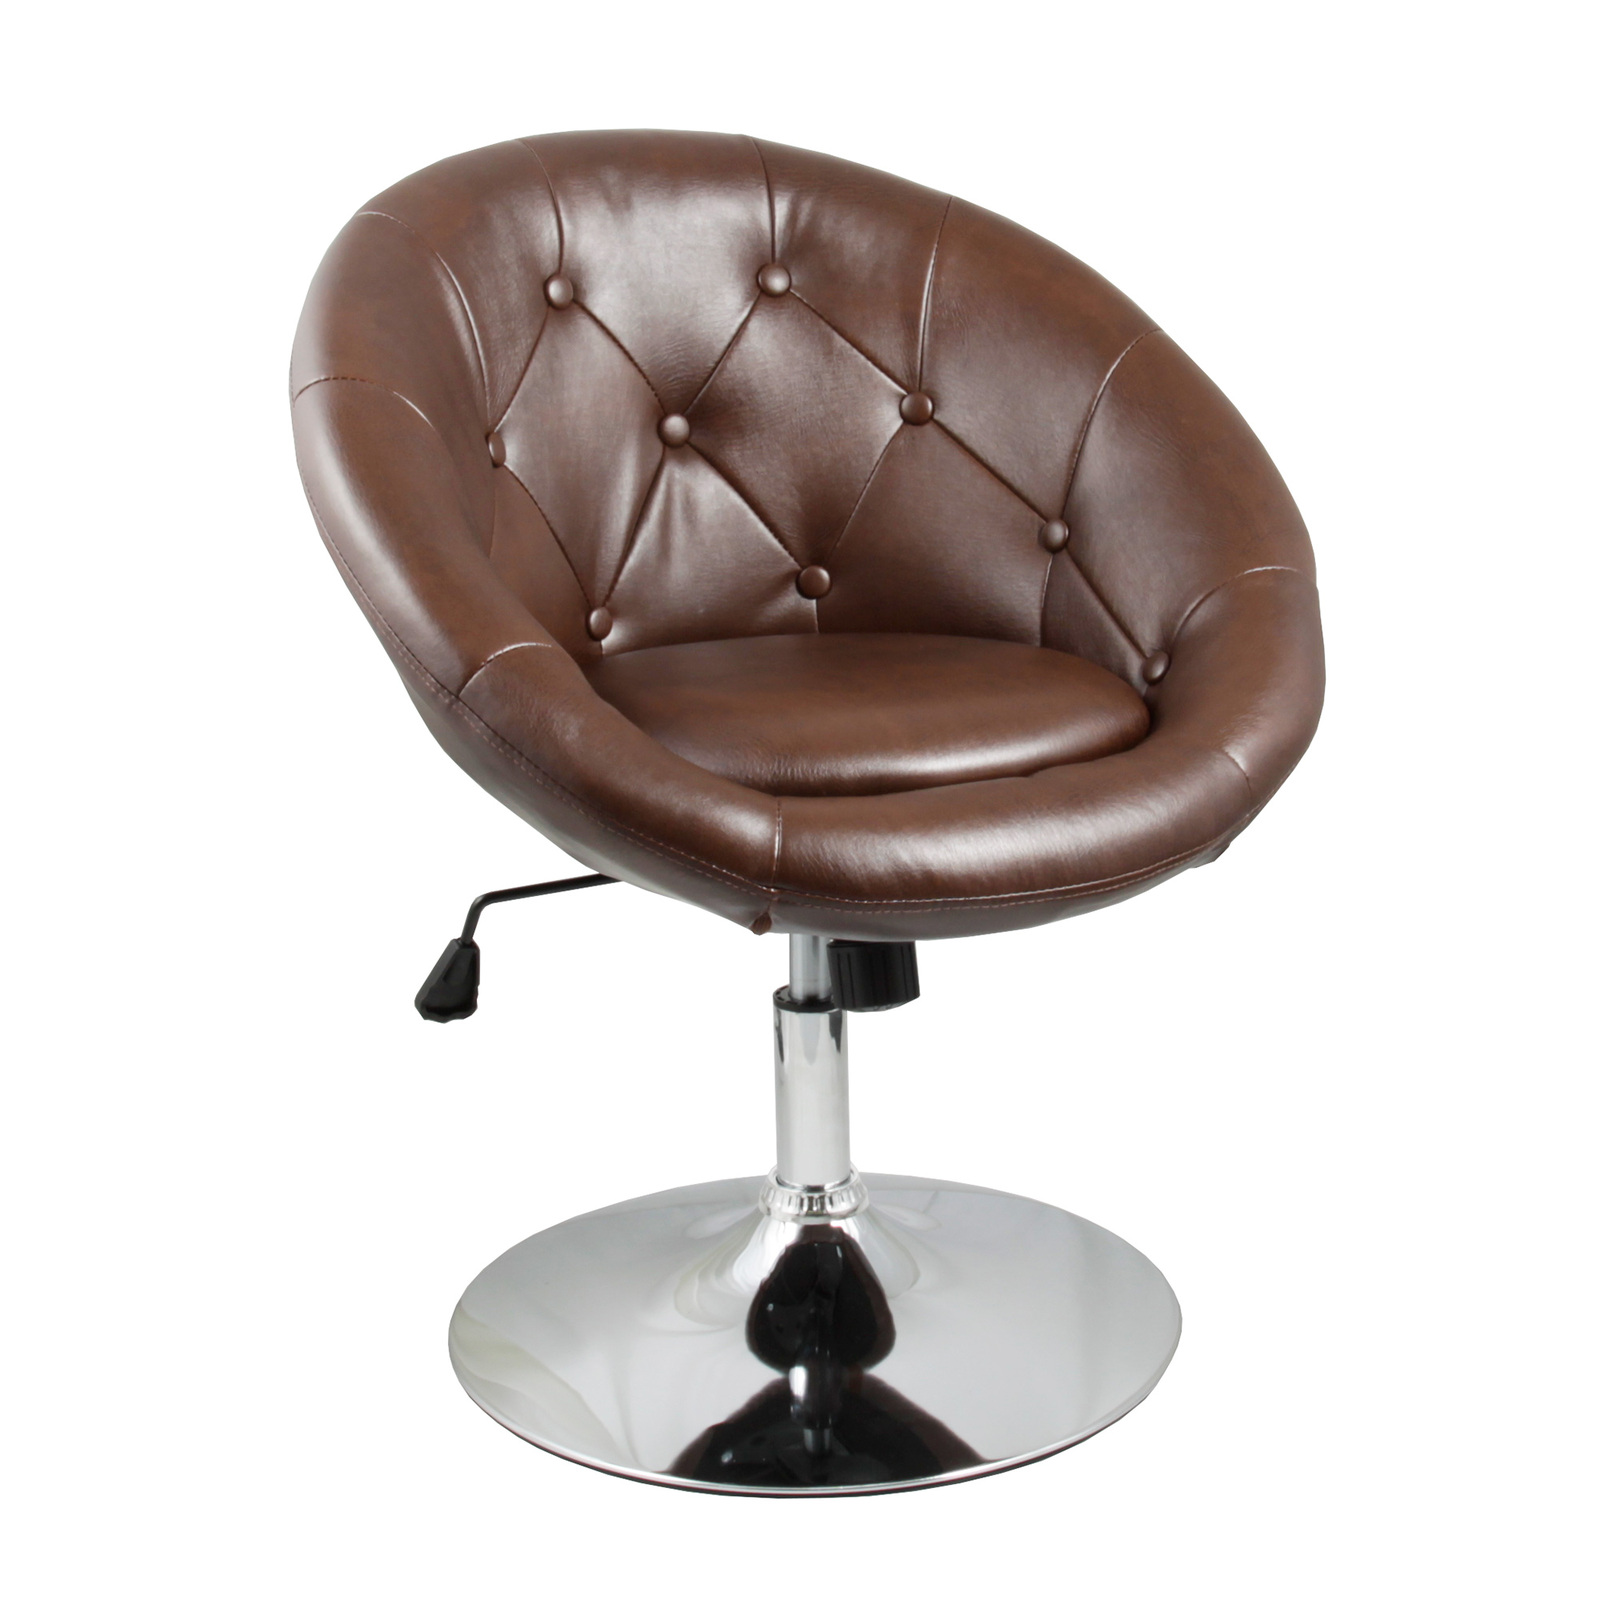 Apontus accent round back swivel chair brown chairs